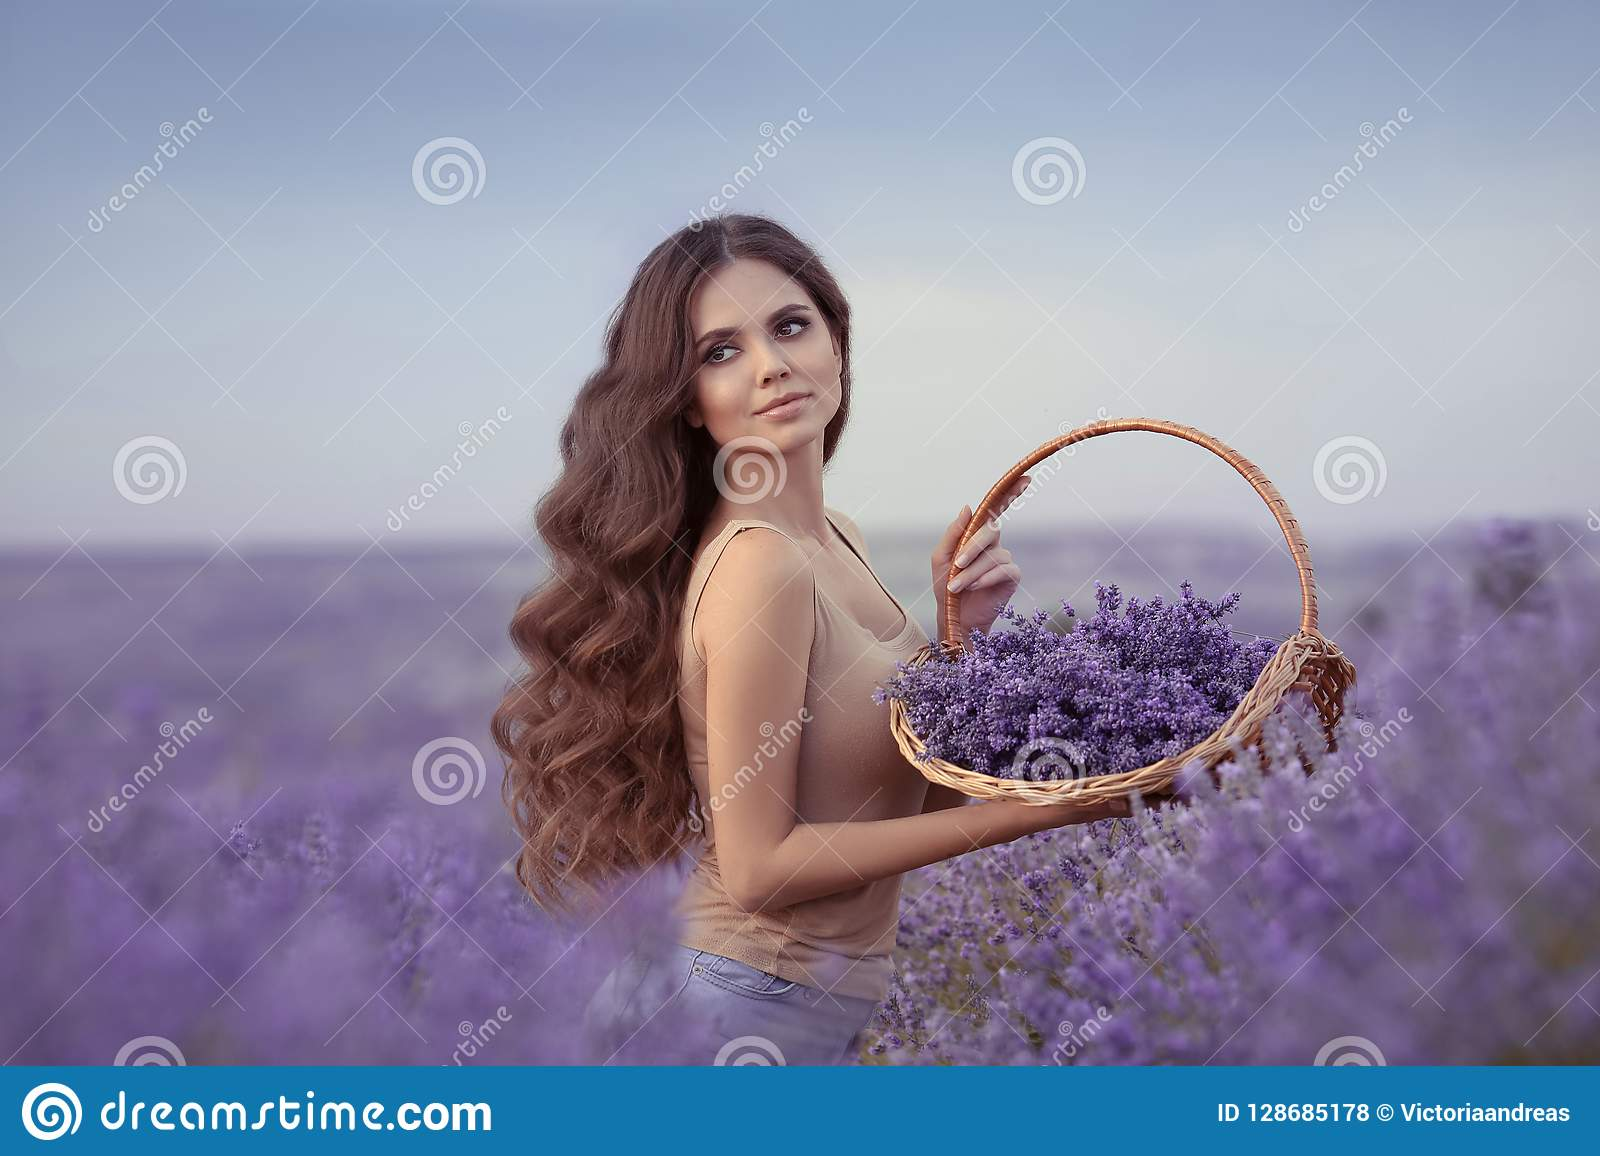 Natural beauty. Beautiful provence woman with basket flowers harvesting in lavender field at sunset. Attractive pretty girl with